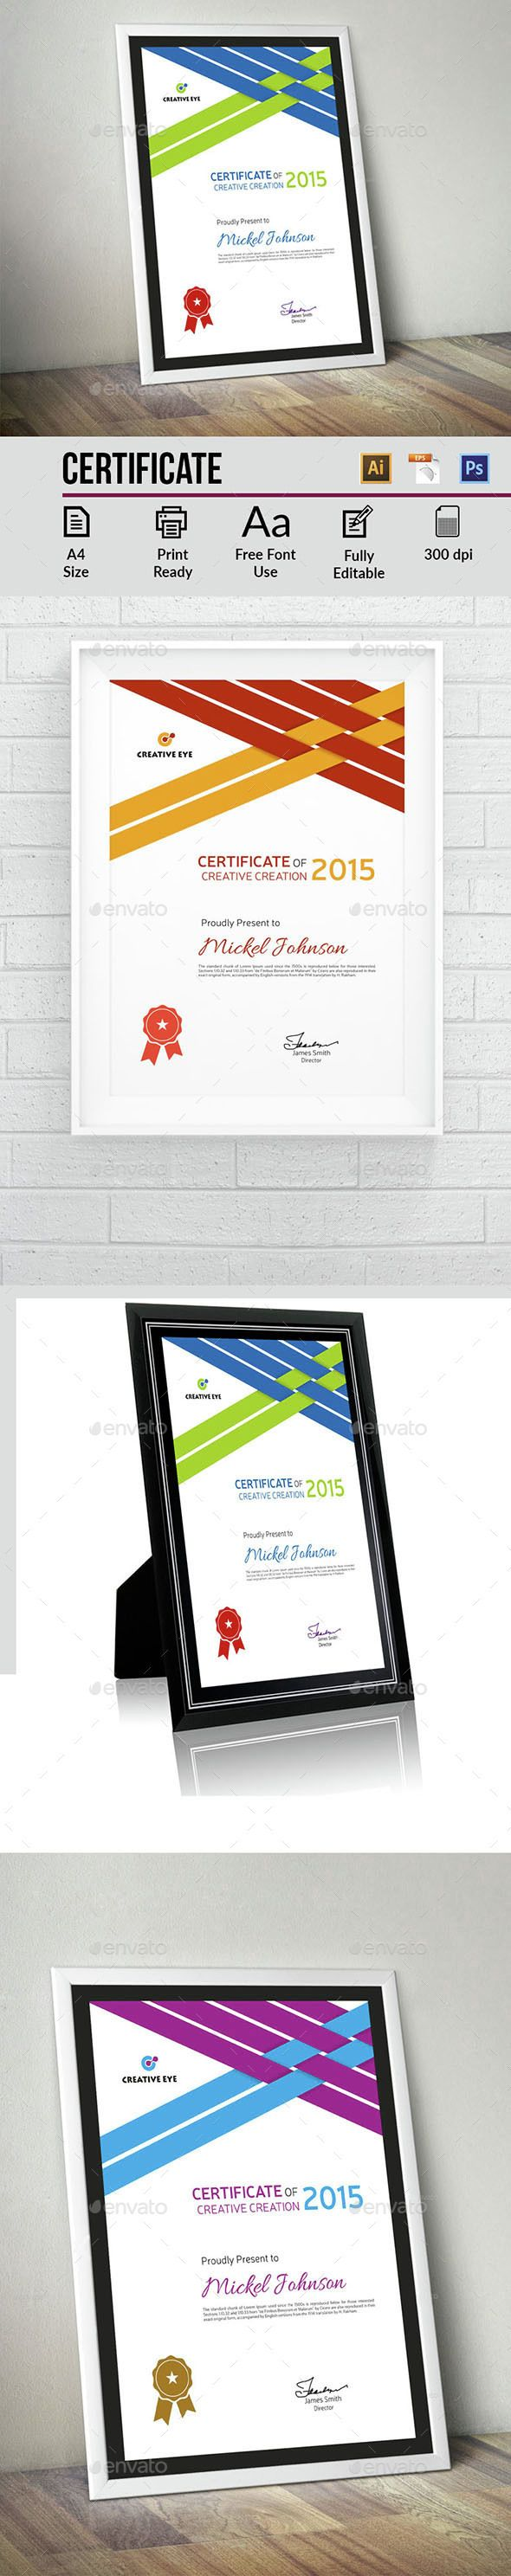 #Certificate - Certificates Stationery Download here: https://graphicriver.net/item/certificate/14649203?ref=alena994